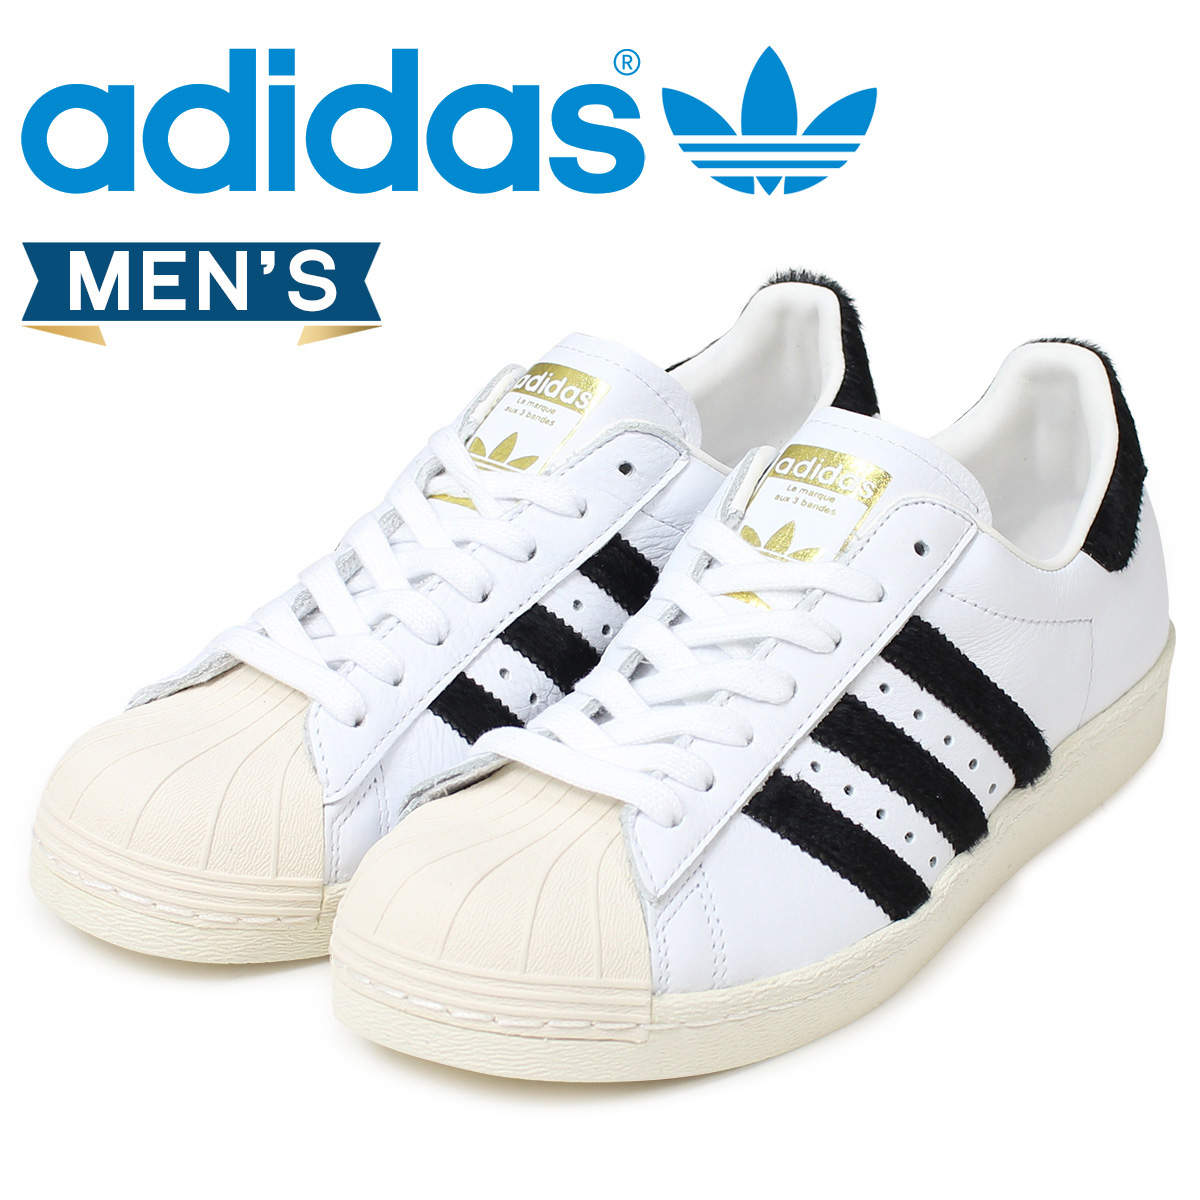 ALLSPORTS: Adidas superstar Lady's men sneakers